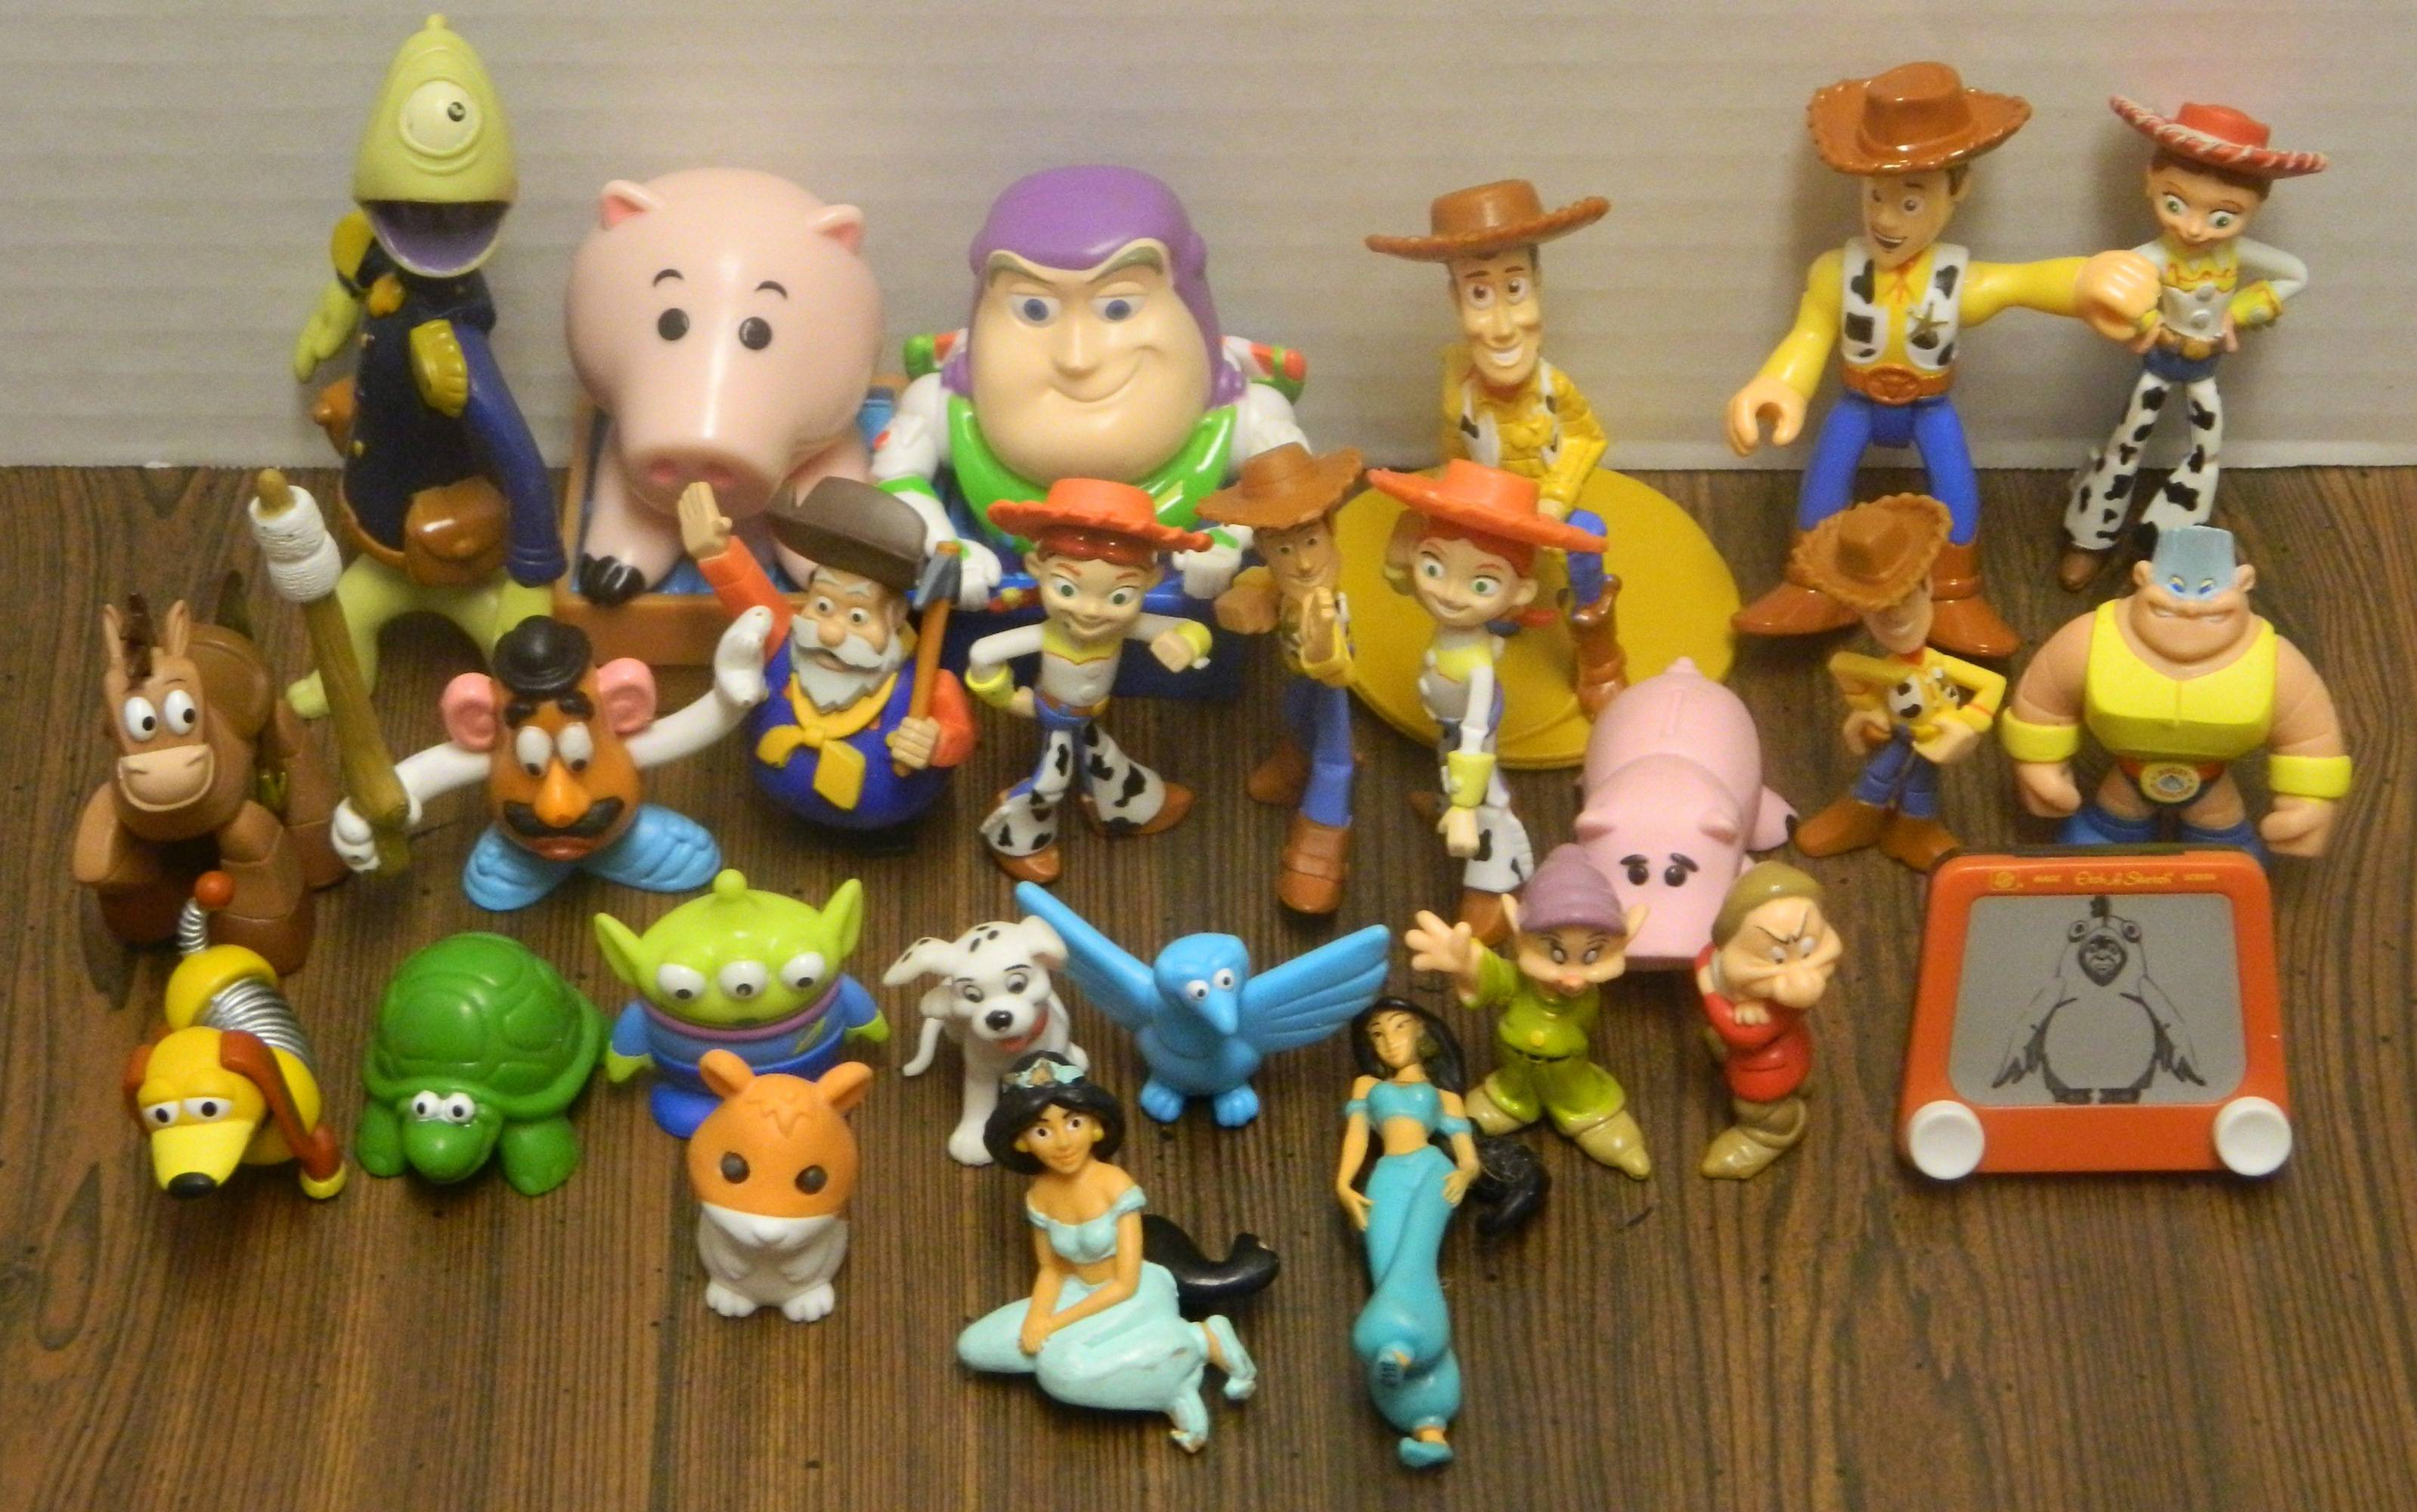 Toys For Disney : It came from a thrift store june